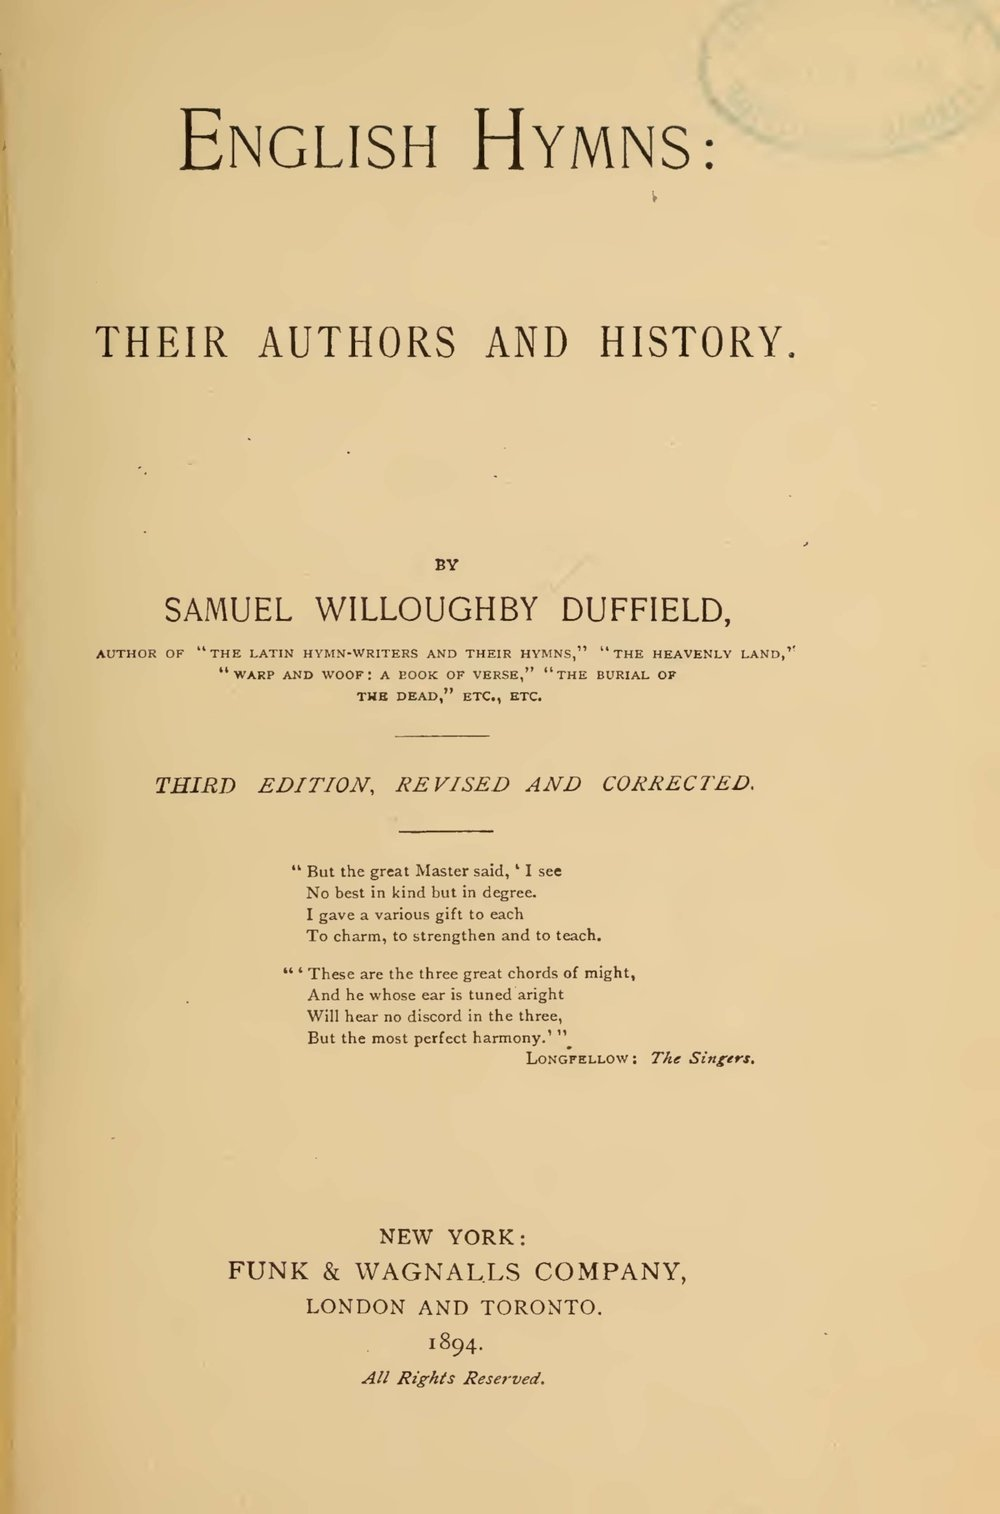 Duffield, Samuel Willoughby, English Hymn, Their Authors and History Title Page.jpg